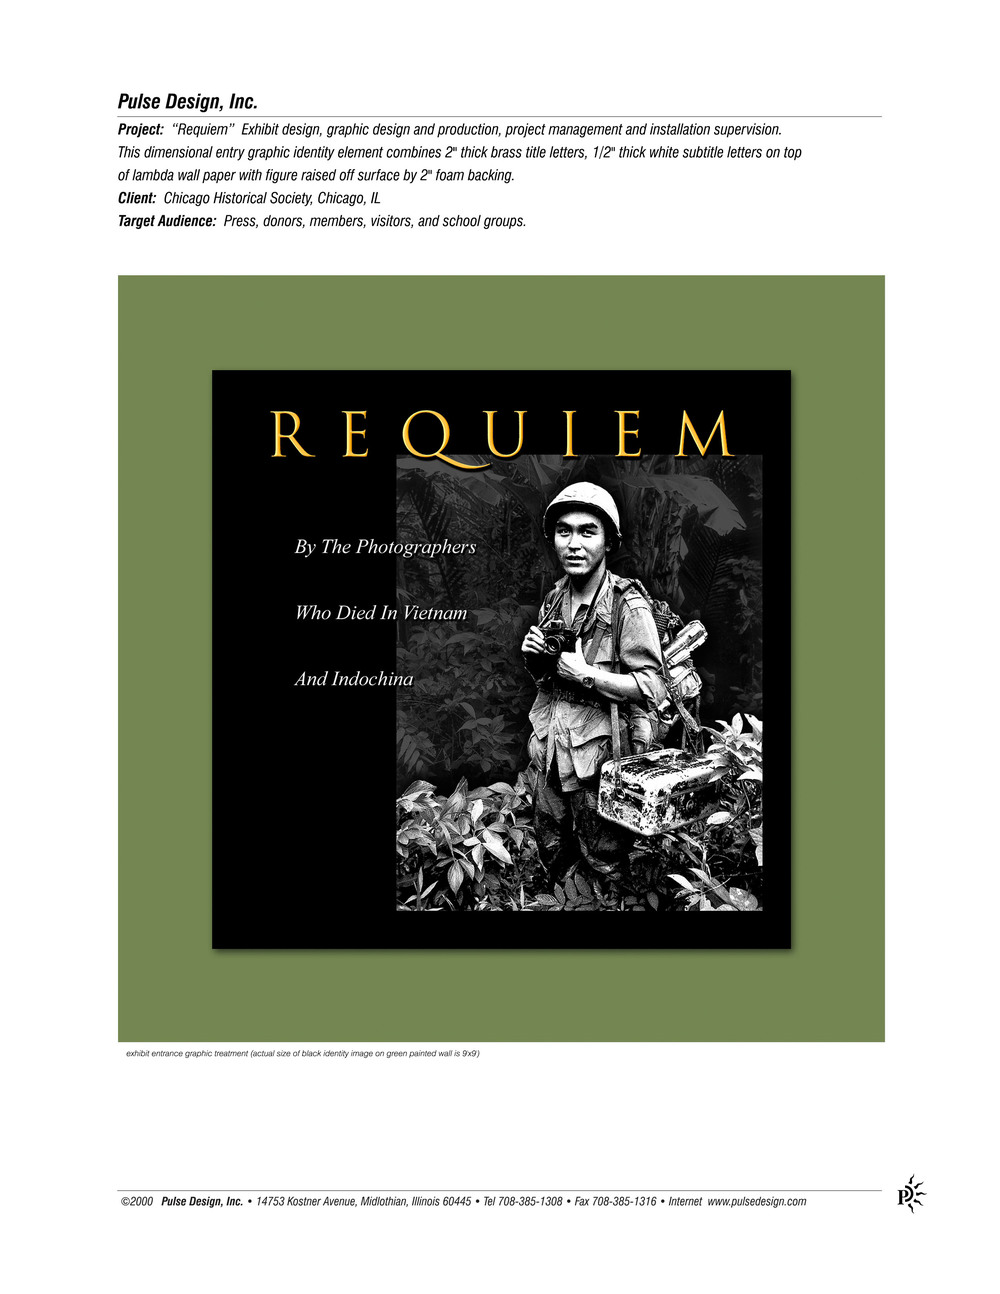 CHS-Requiem-Exhibit-2-Pulse-Design-Inc.jpg